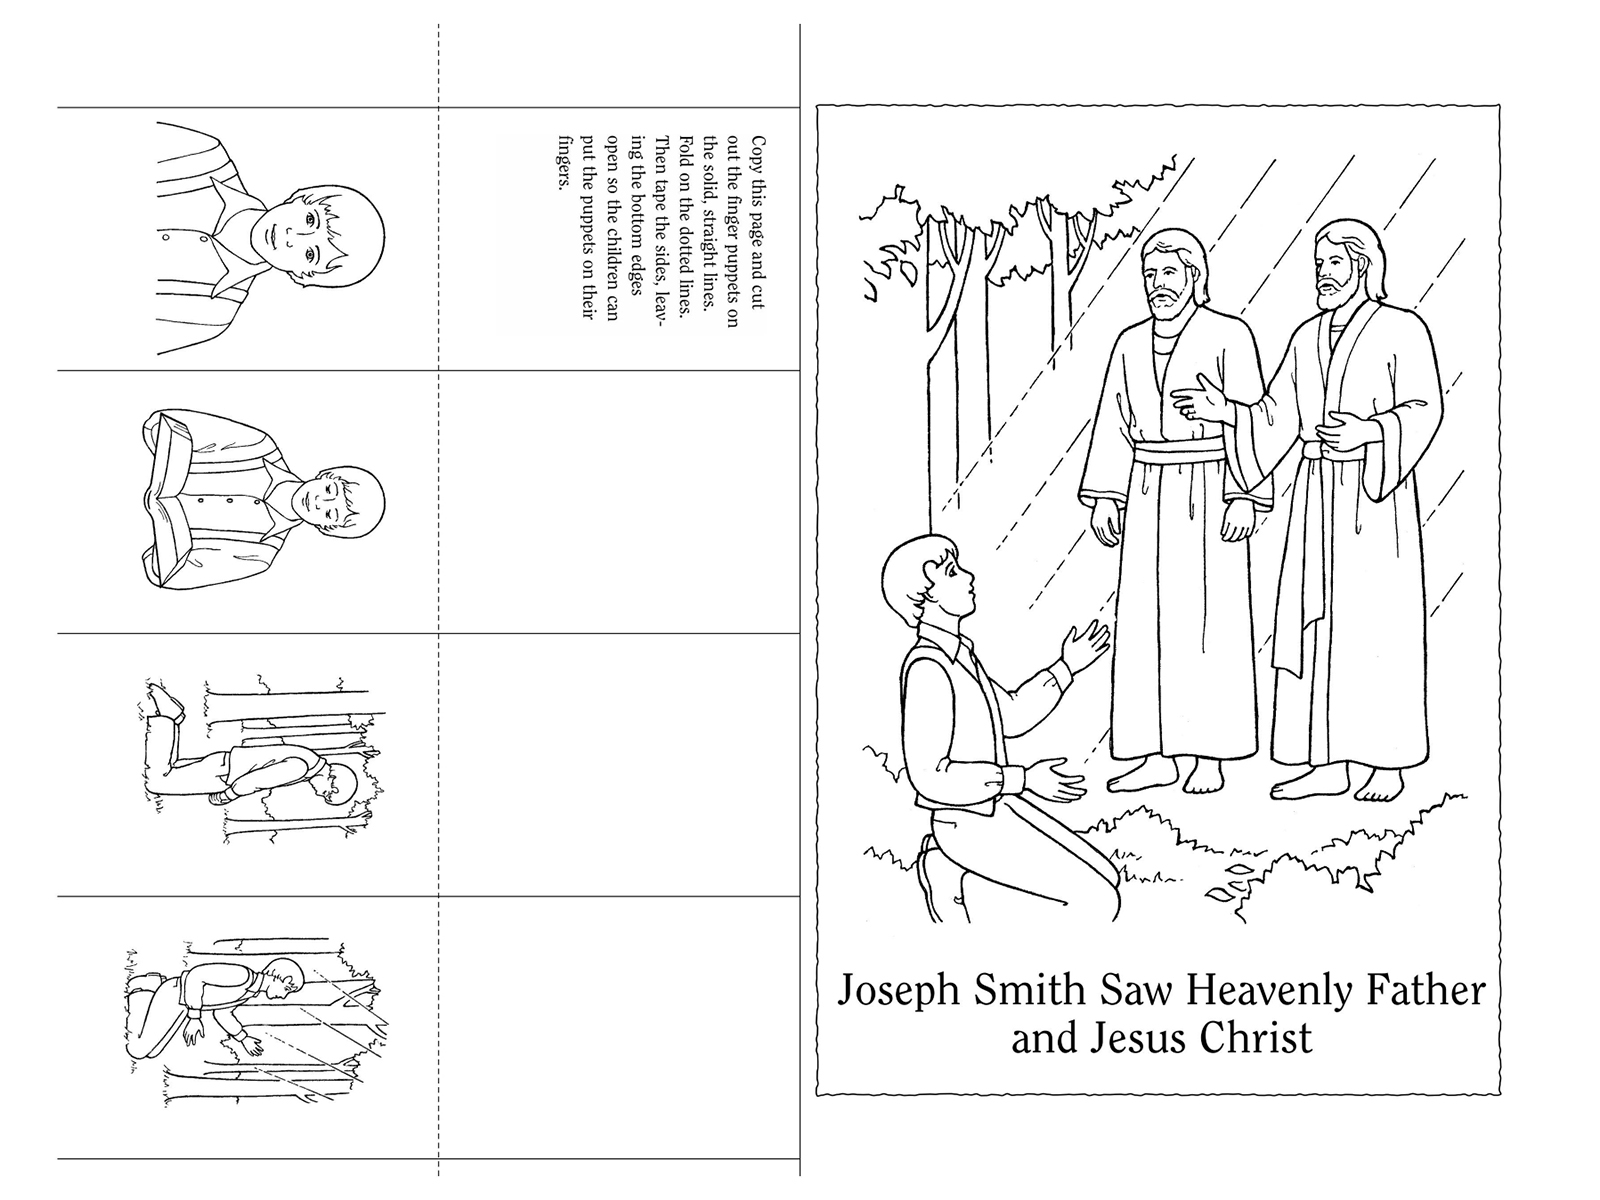 nursery manual page 91 joseph smith saw heavenly father and jesus